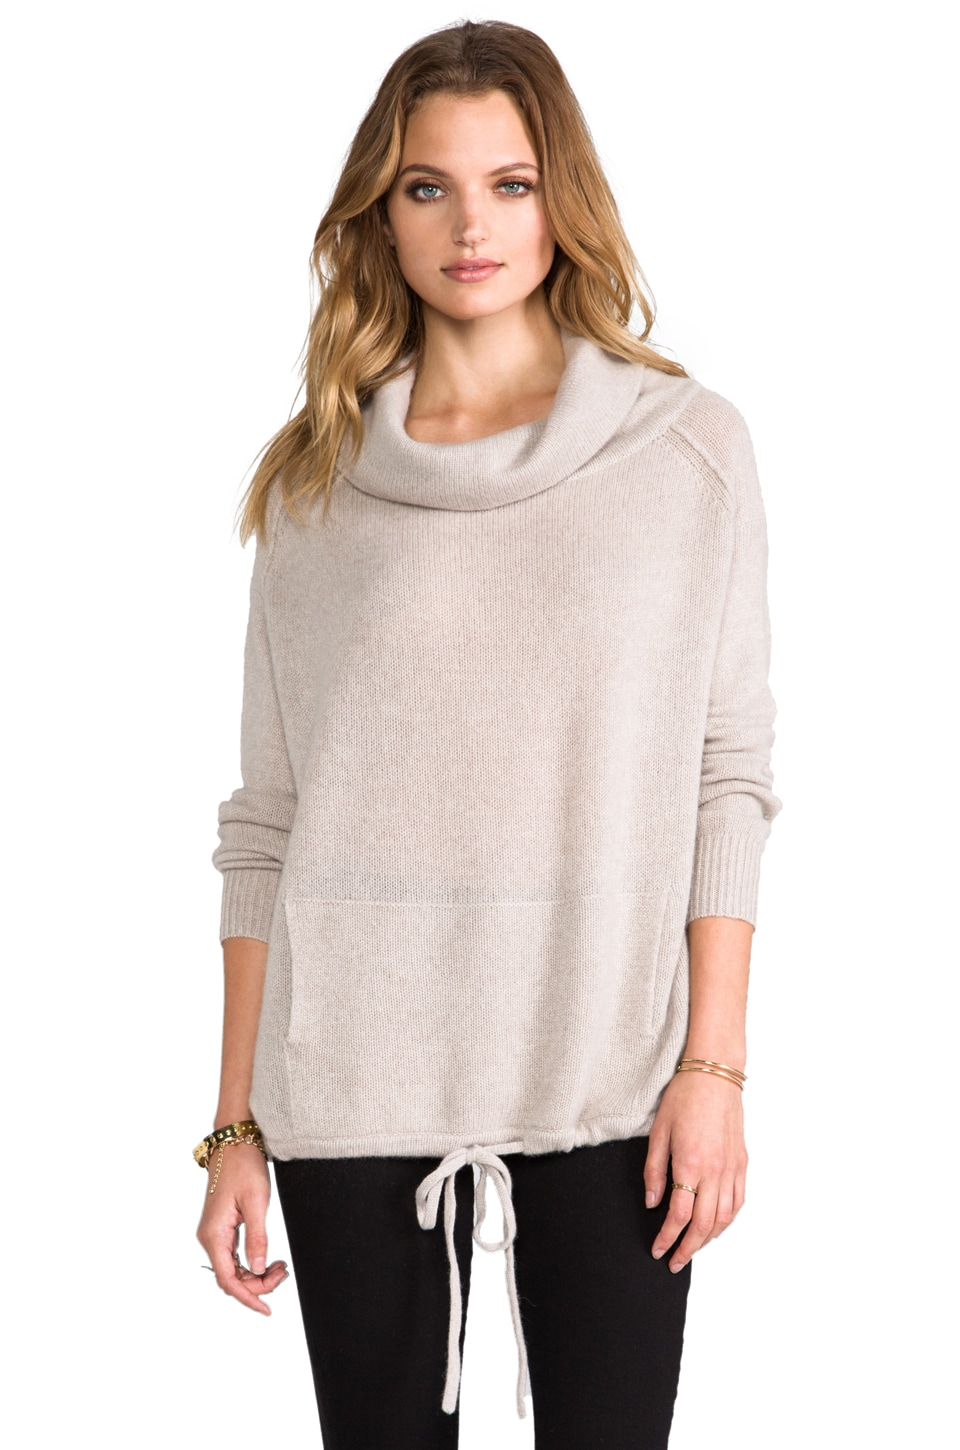 360CASHMERE Aspen Cashmere Sweater in Oatmeal